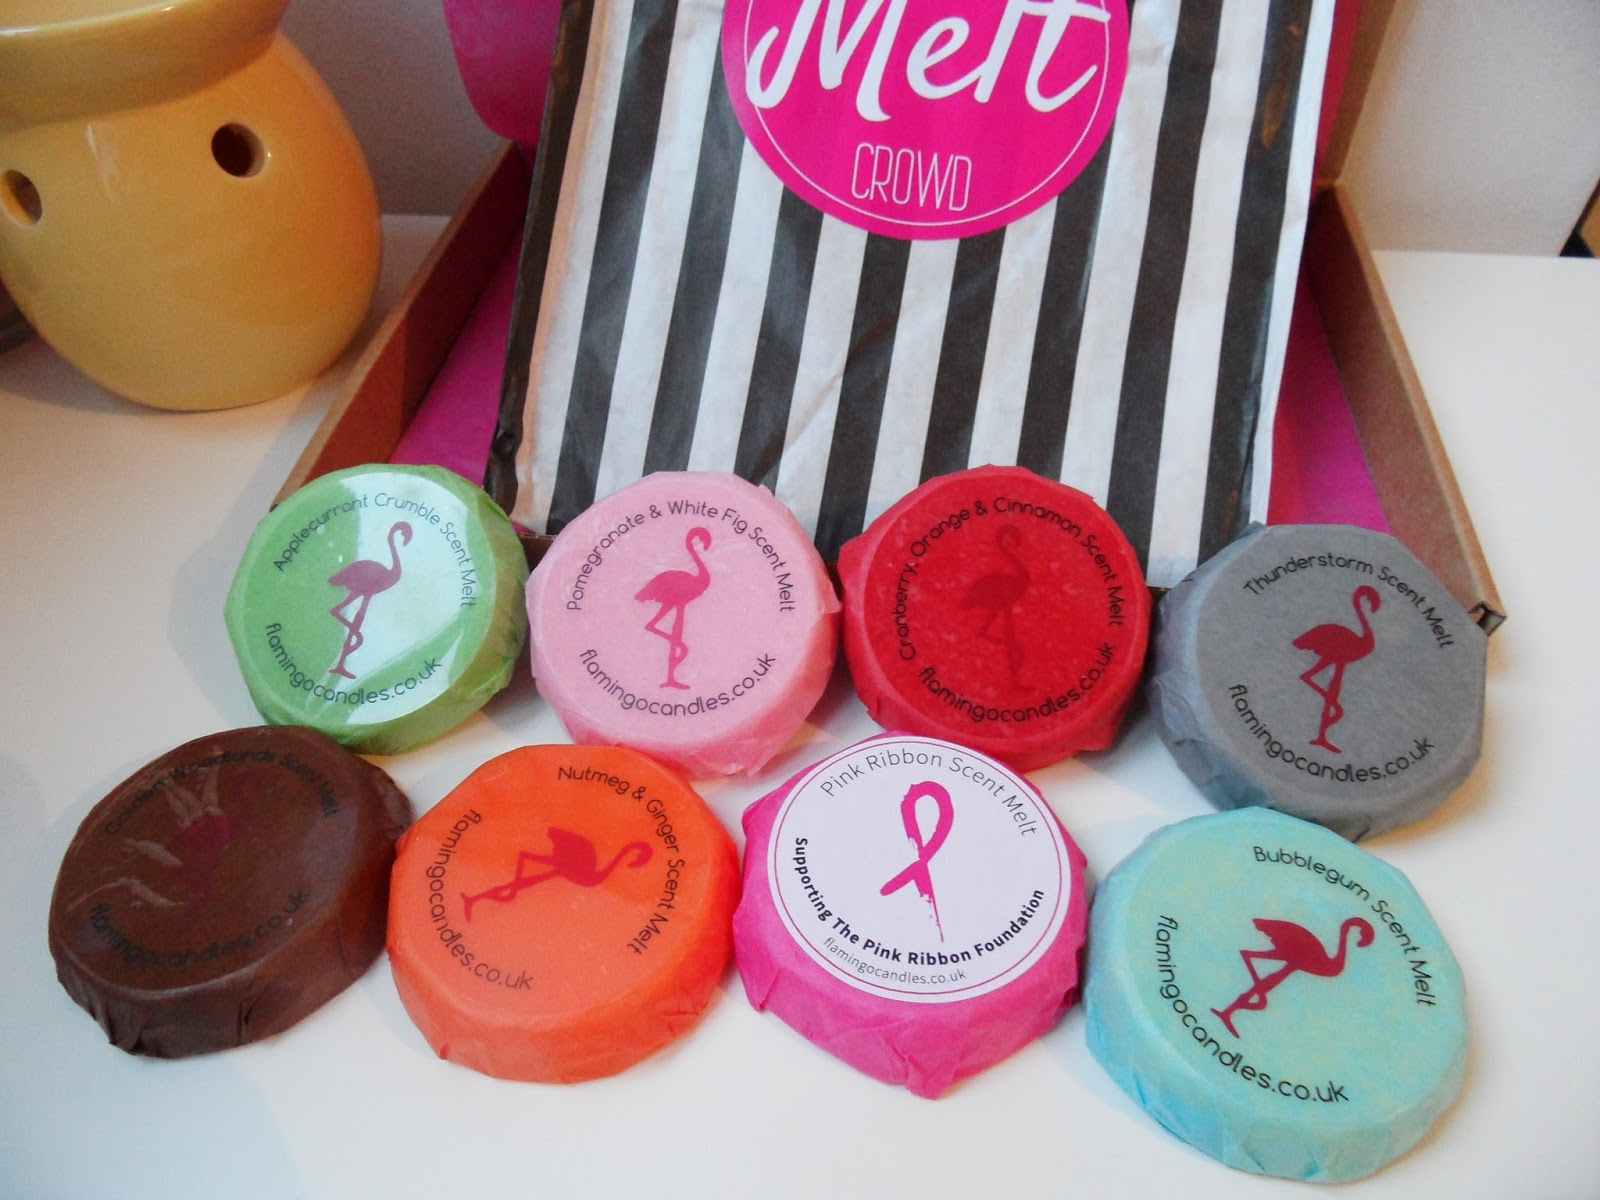 THE MELT CROWD ¦ OCTOBER 2015